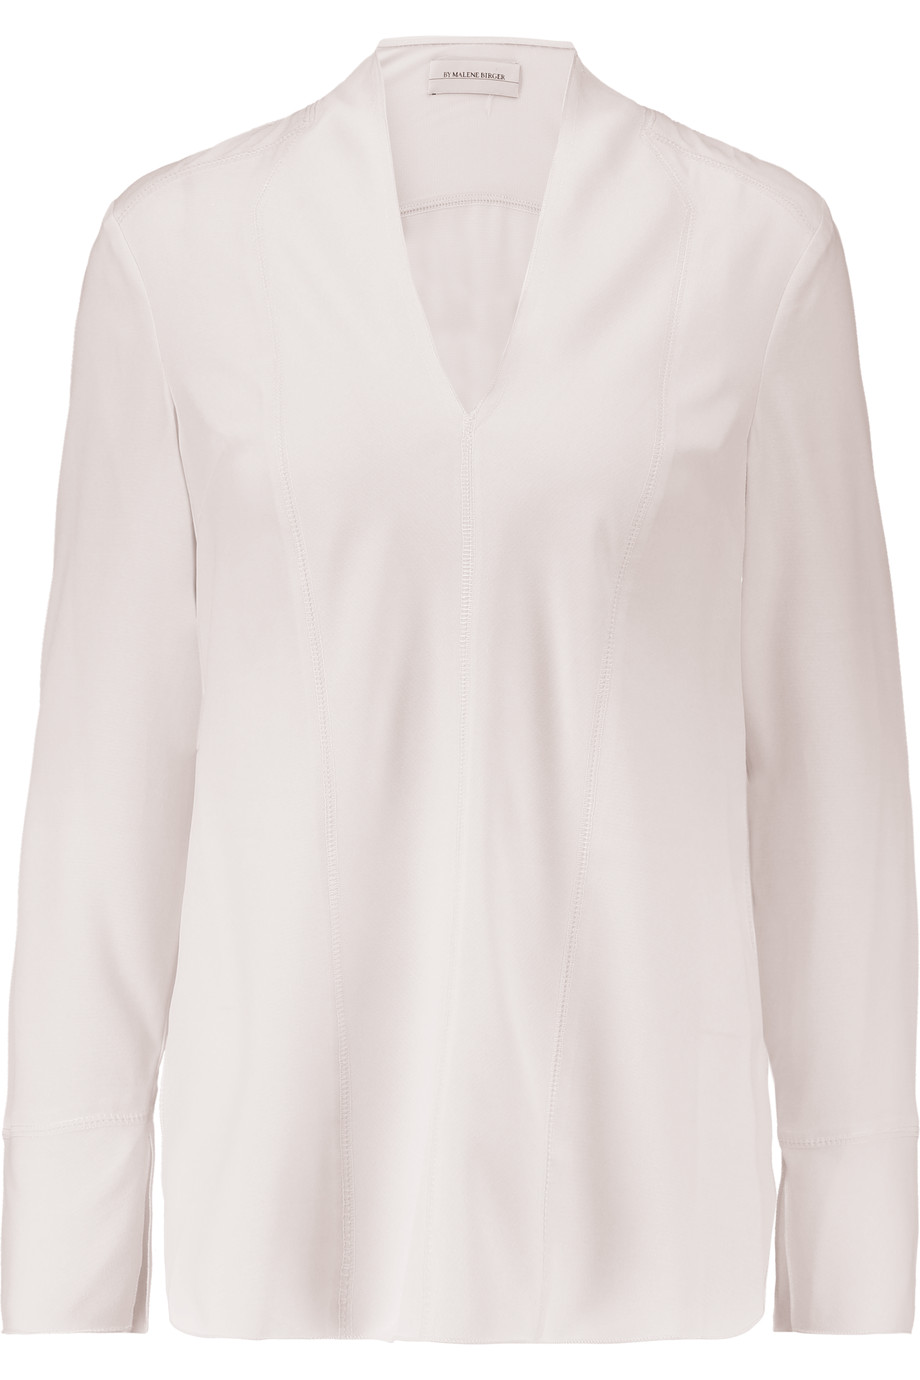 Long sleeved blouse By Malene Birger buy Long sleeved blouse By Malene Birger internet shop